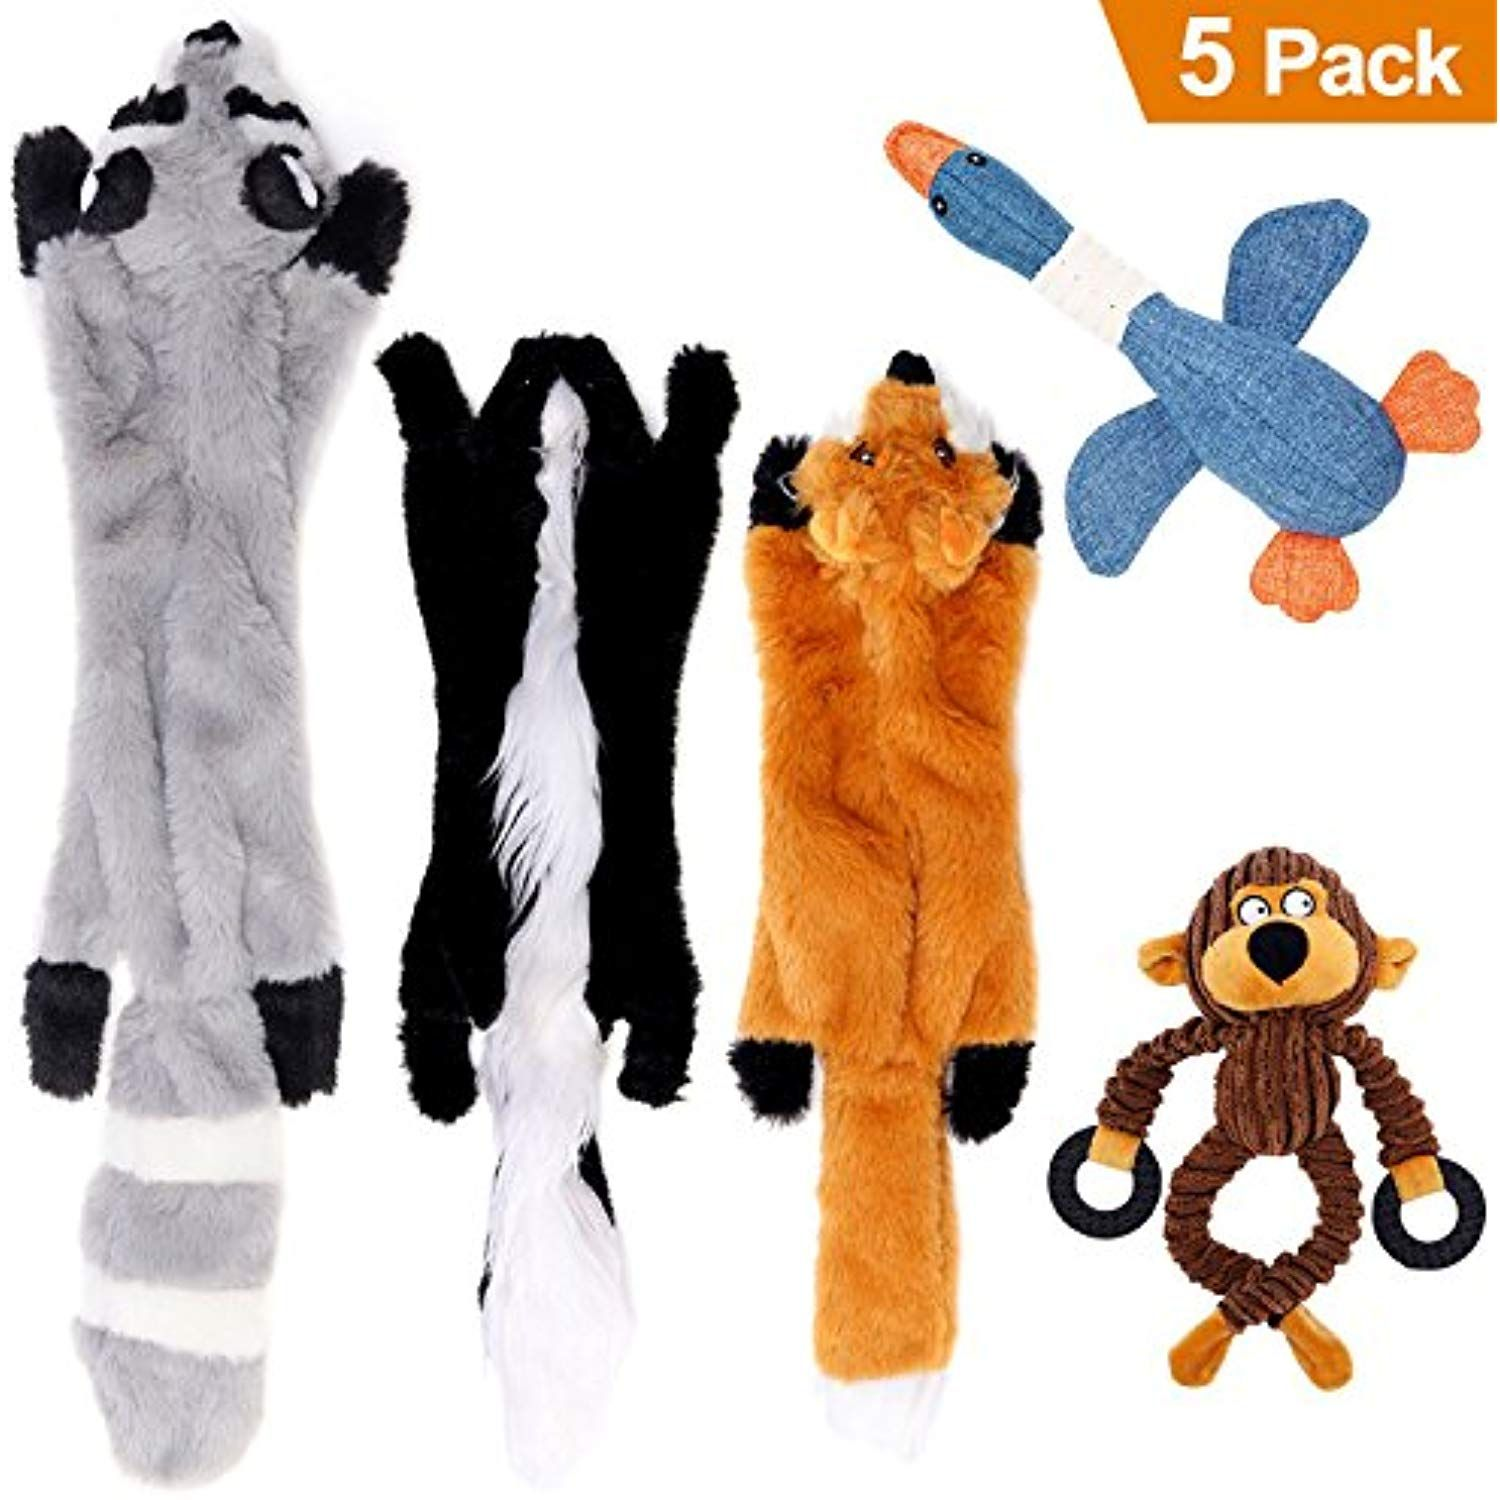 Lovekong Stuffingless Dog Toys No Stuffing Dog Toys Of Raccoon